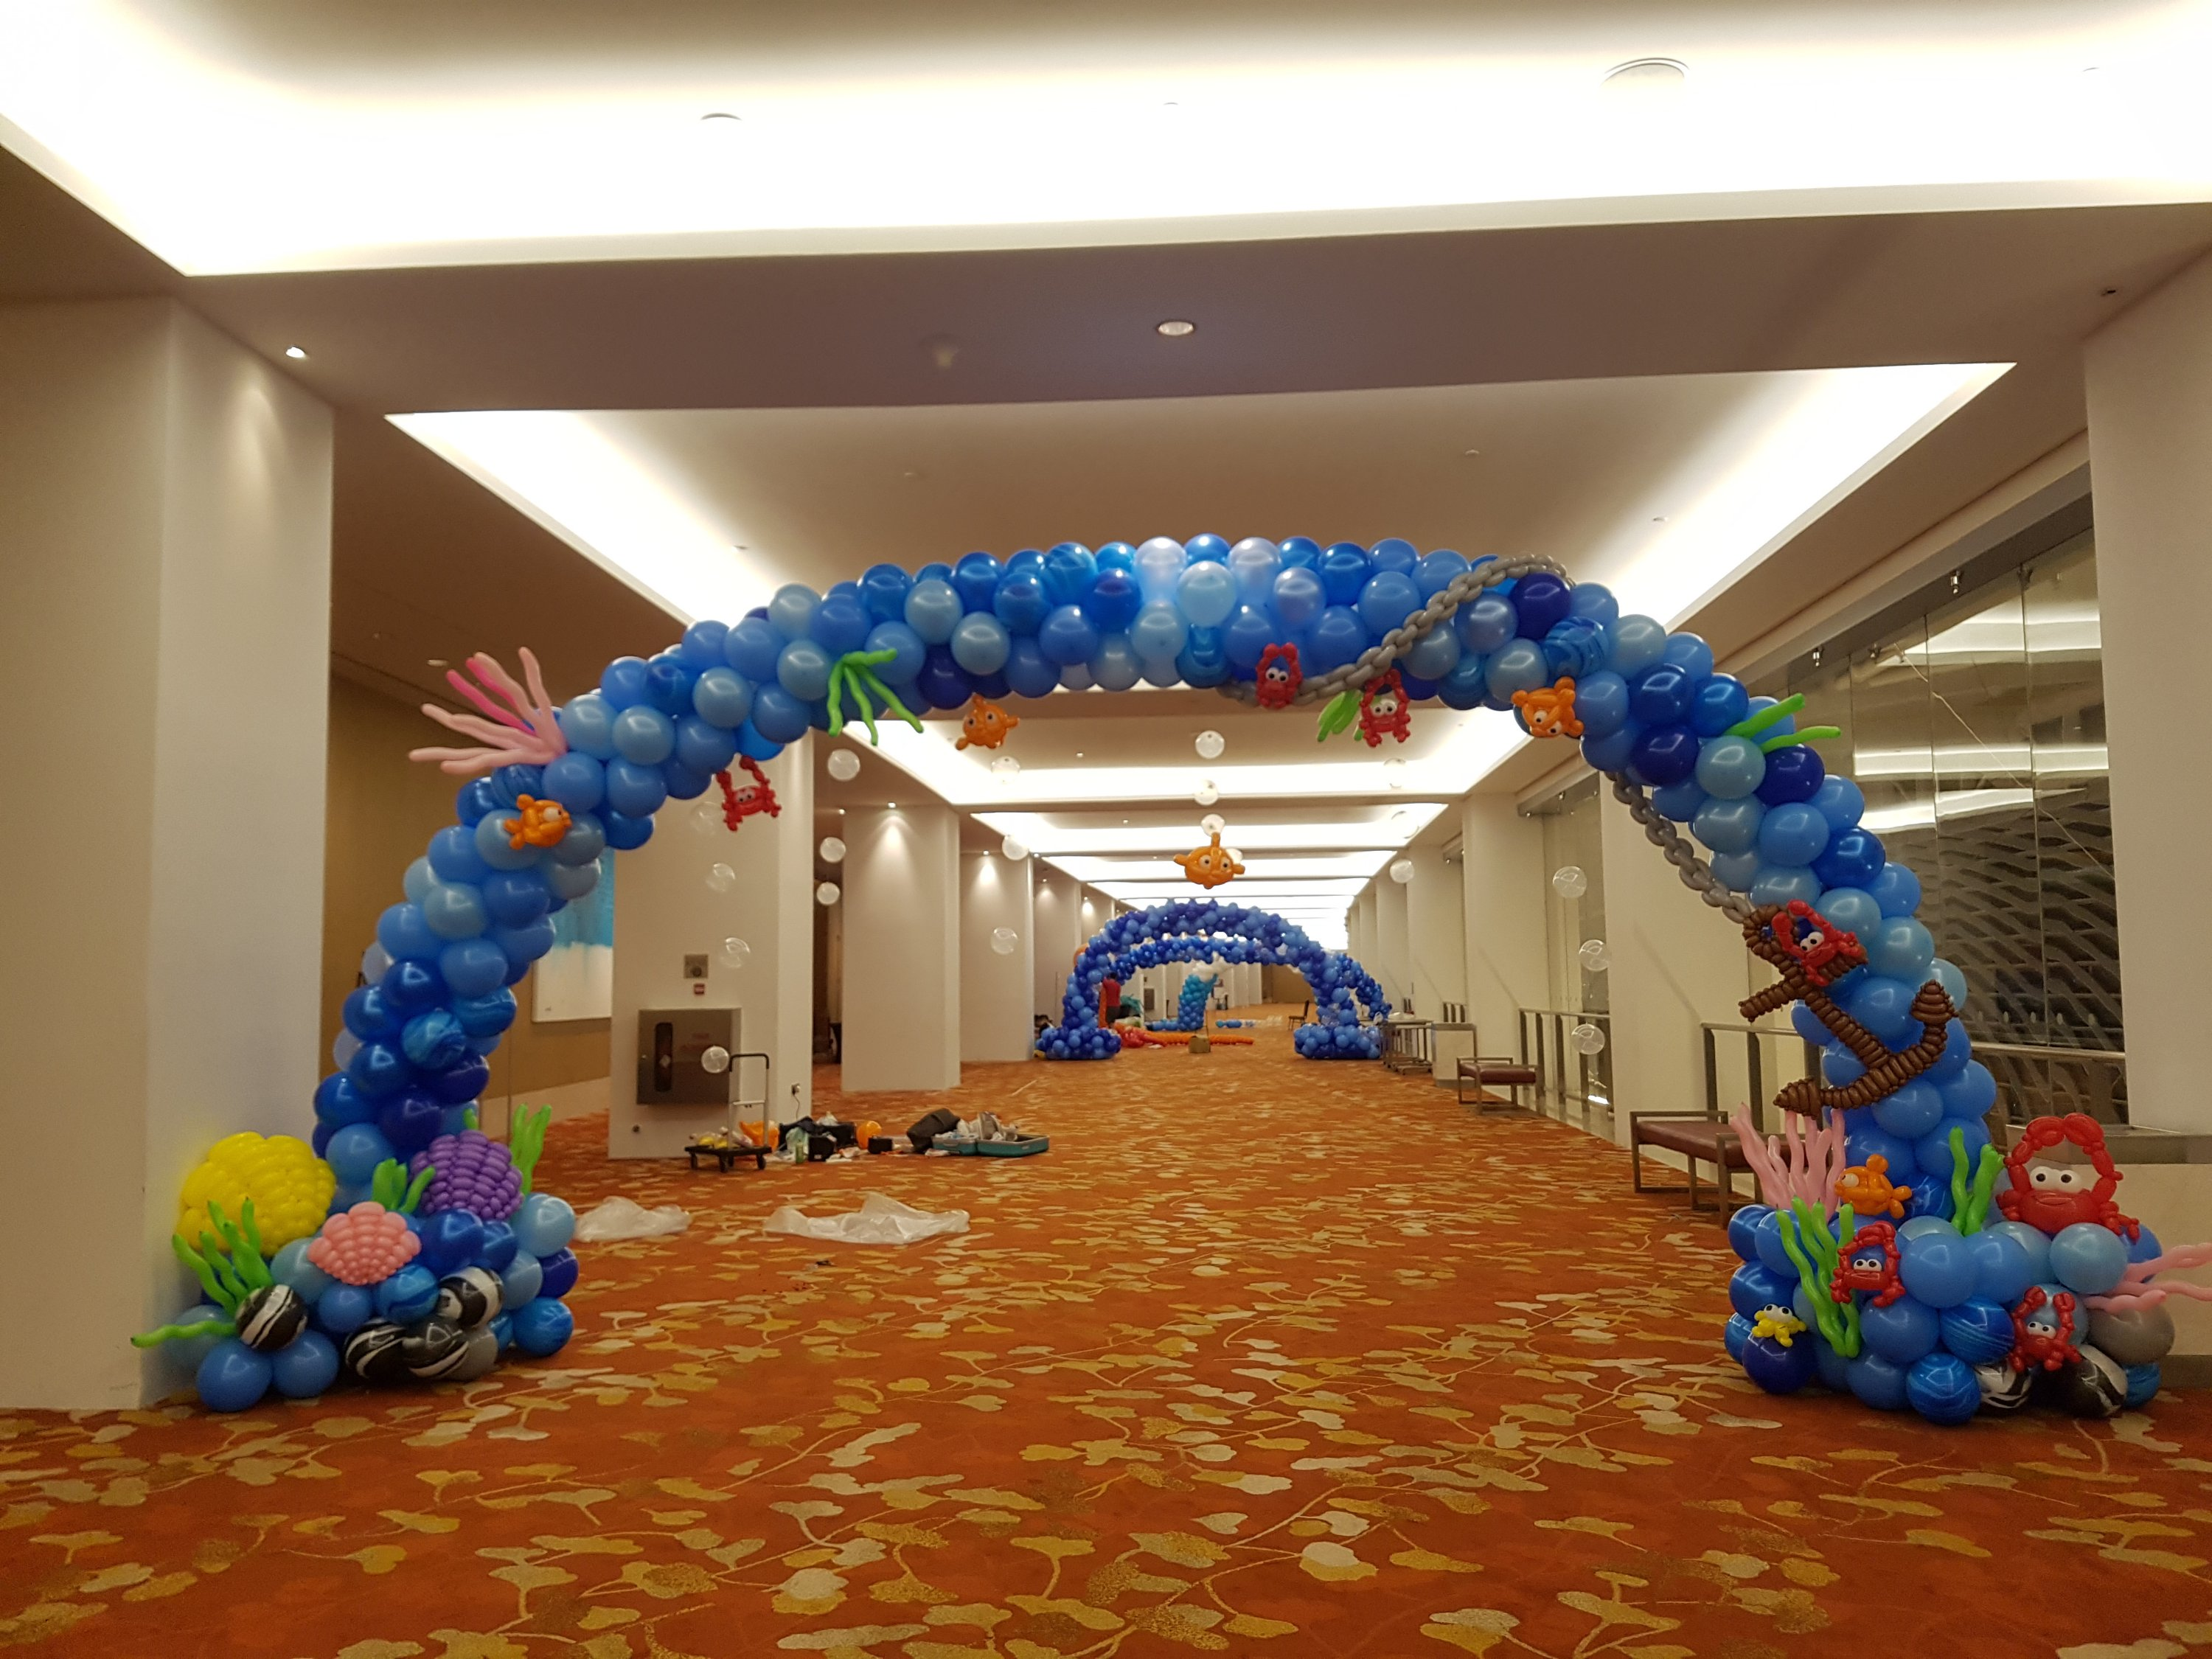 , Underwater themed balloon decorations at MBS!, Singapore Balloon Decoration Services - Balloon Workshop and Balloon Sculpting